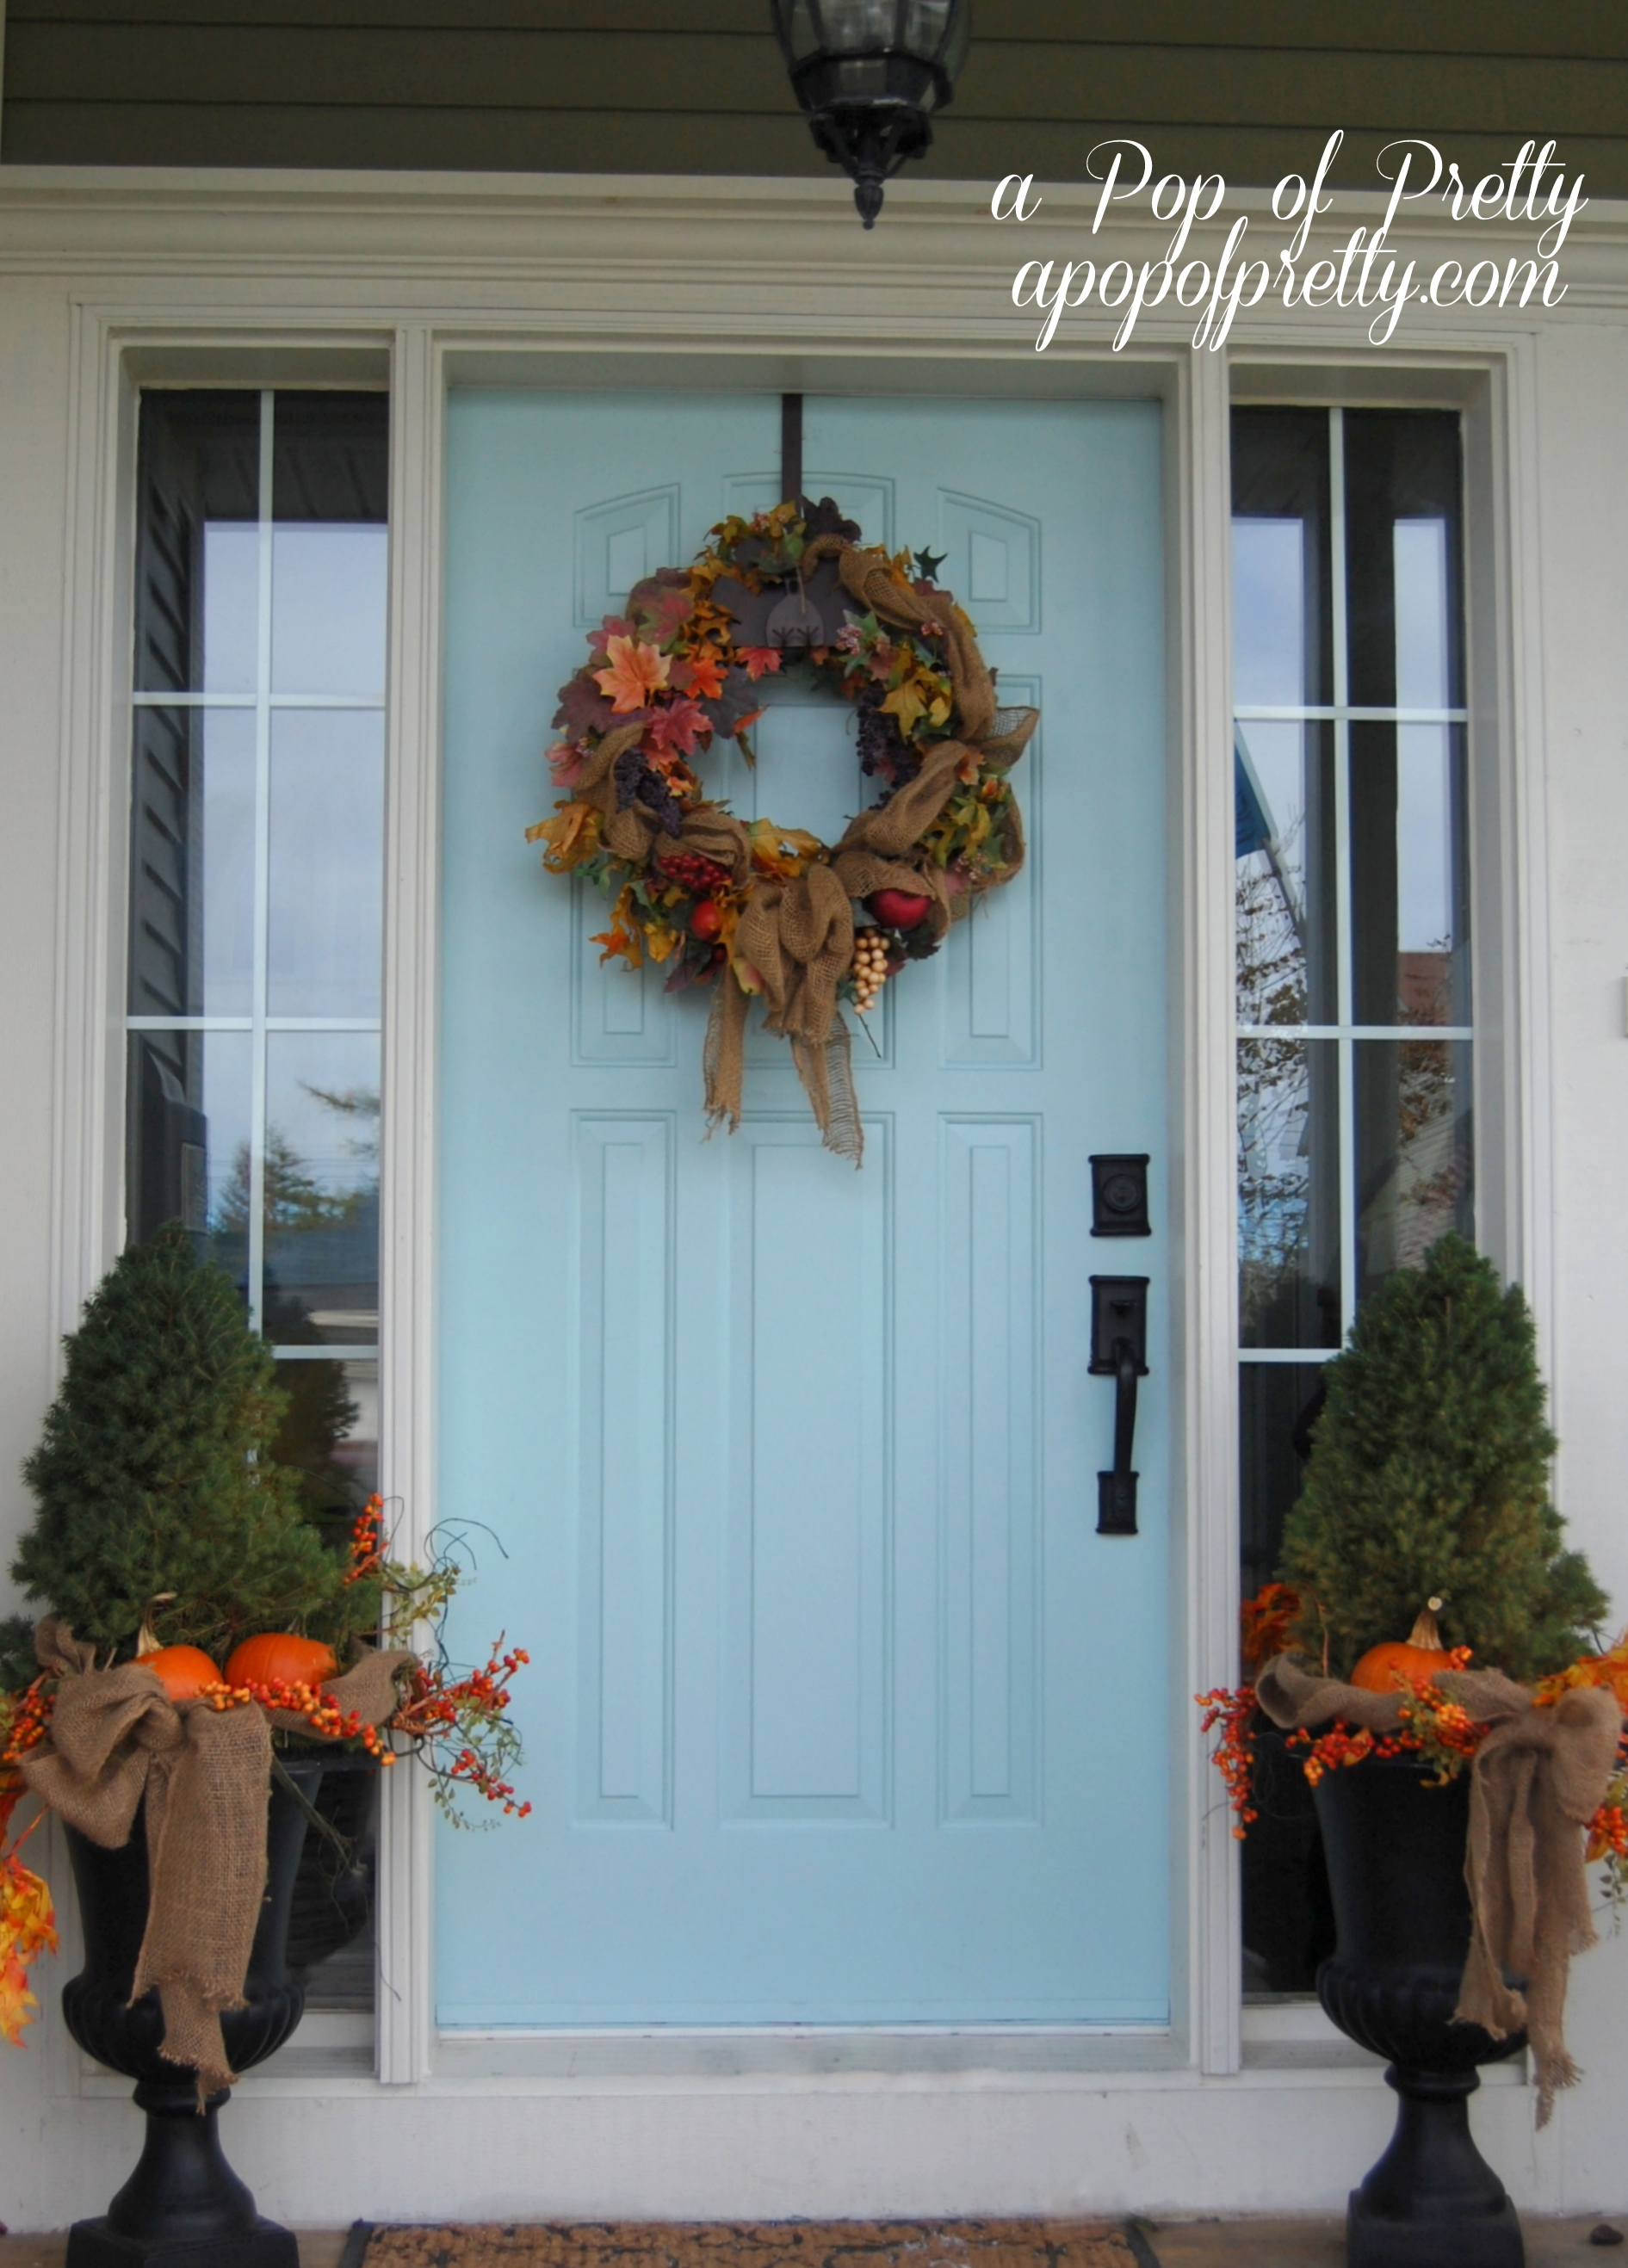 Fall decorating front porch ideas a pop of pretty blog Small front porch decorating ideas for fall